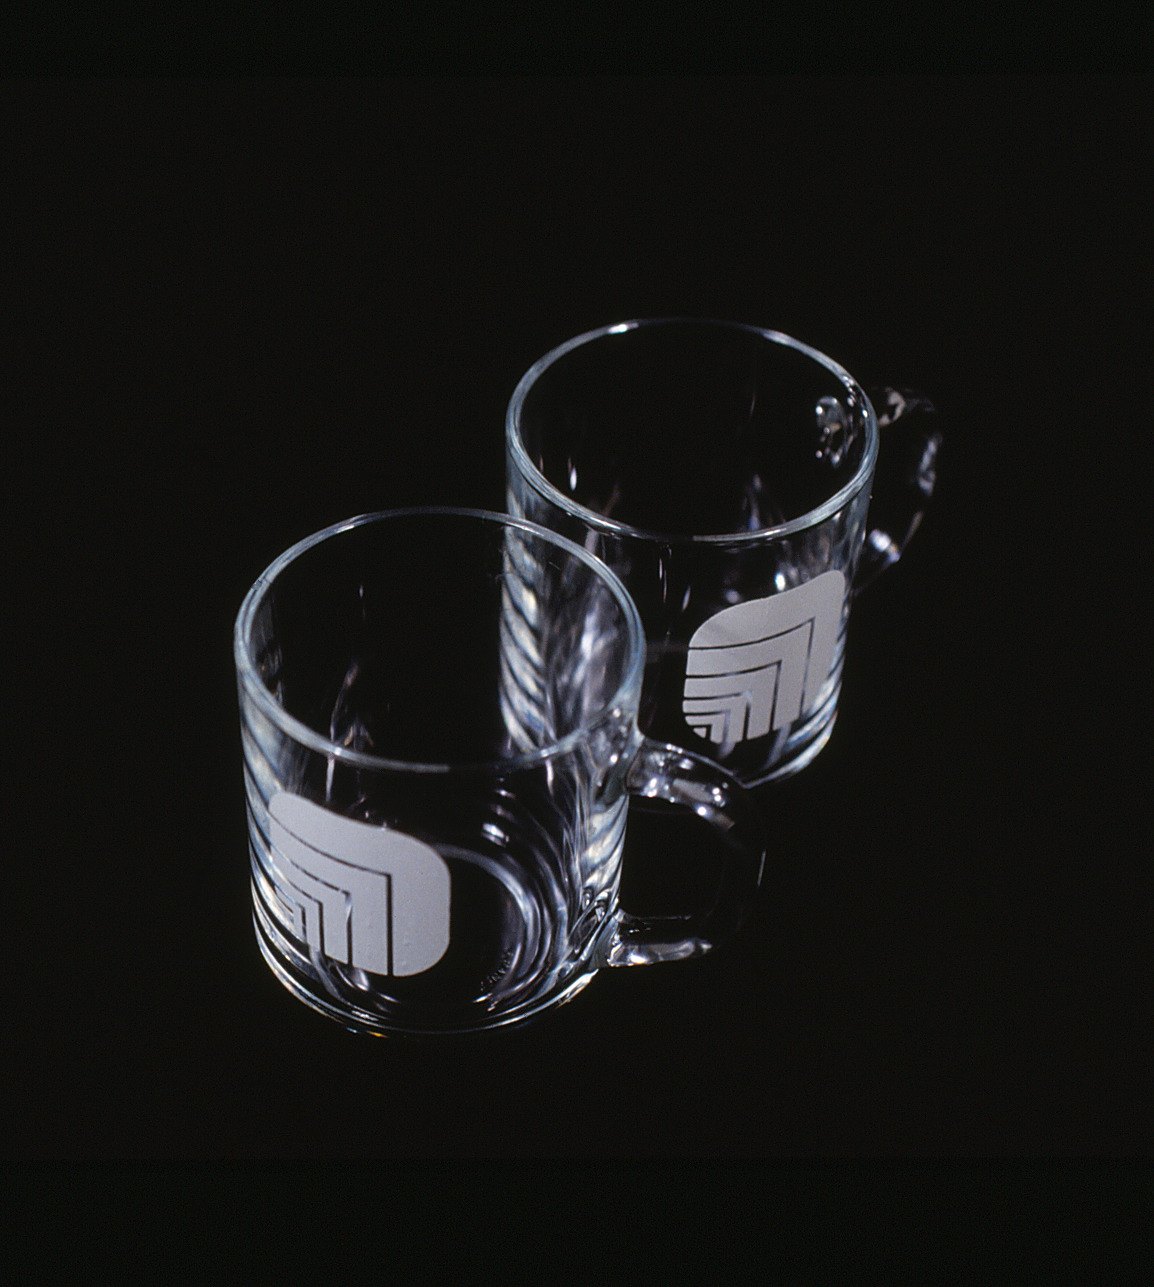 Pair of glass coffee mugs with Oxford logos.